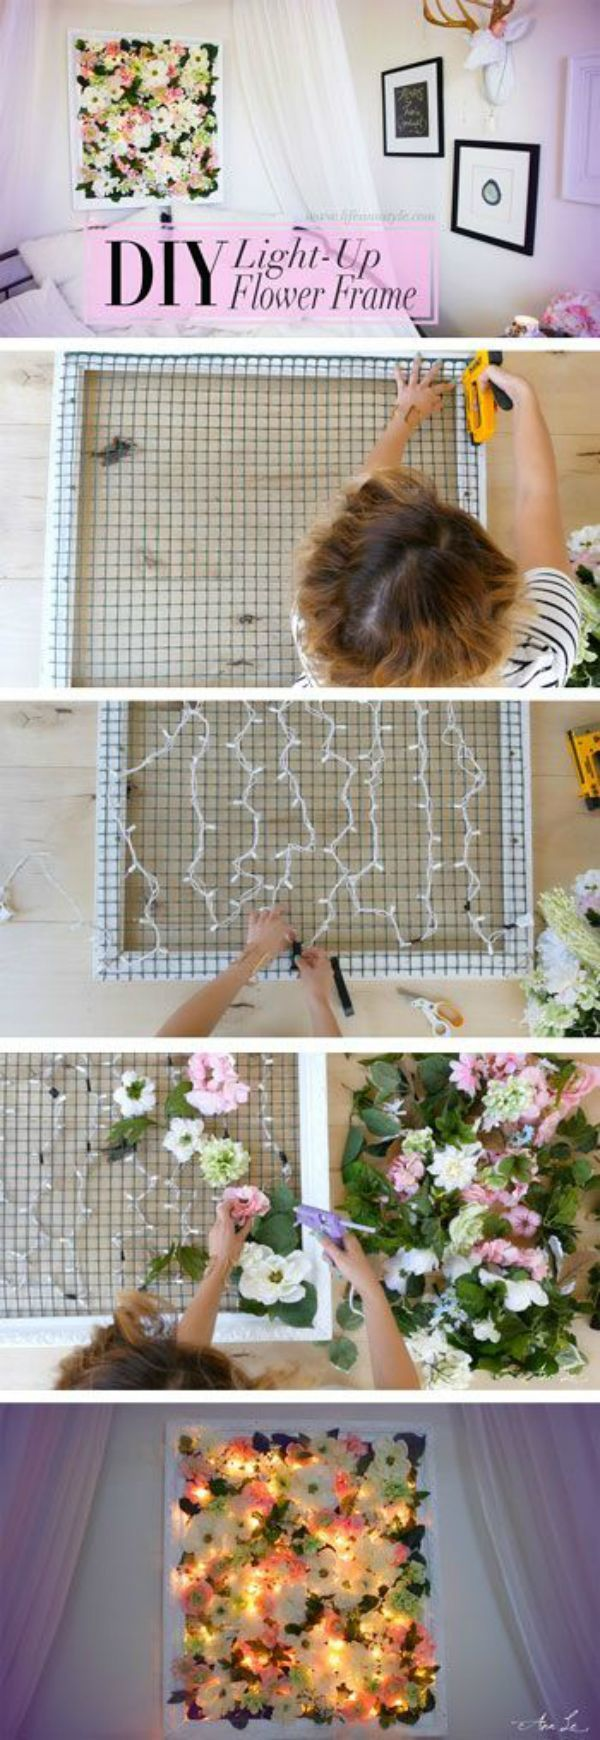 Cheap Bedroom Decor Ideas  DIY Light Up Flower Frame      http. 25  best Cheap Bedroom Ideas on Pinterest   Cheap bedroom decor